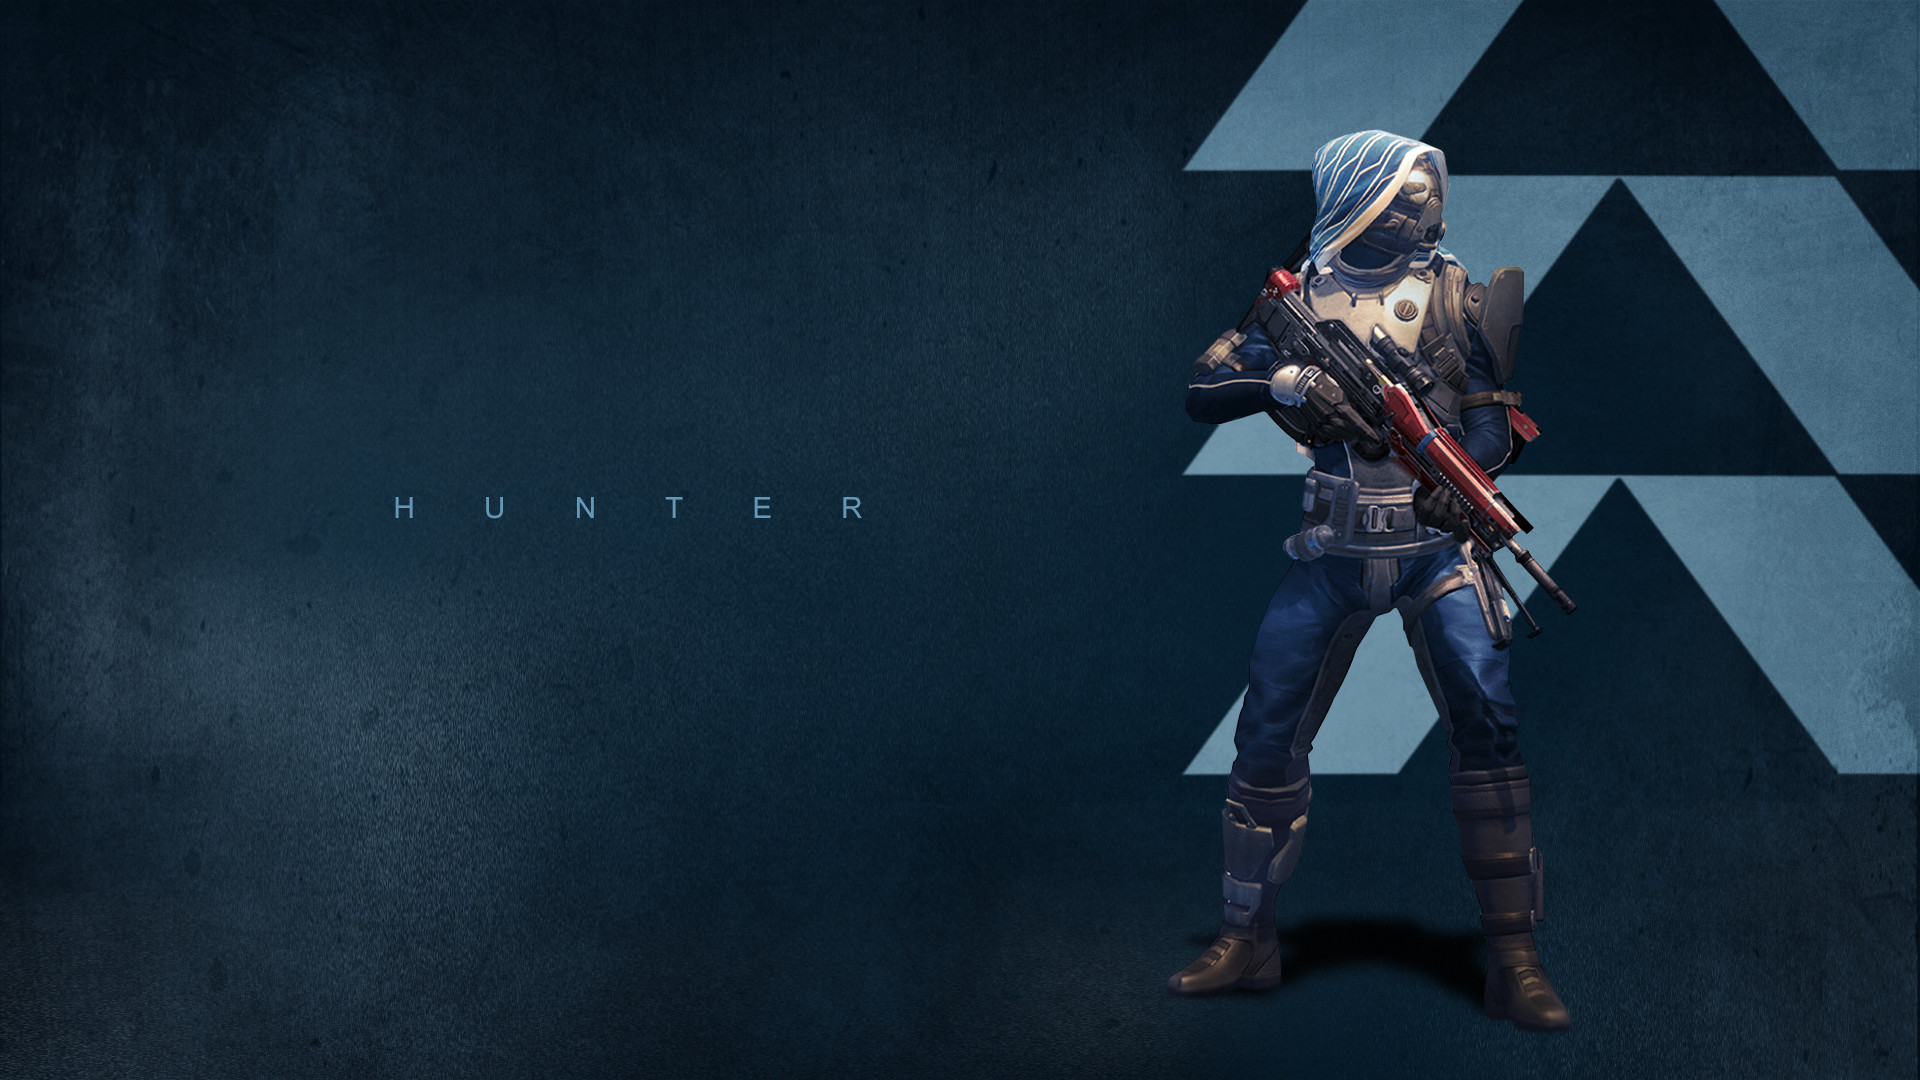 destiny wallpapers pour iphone amp bureau khanapaycom